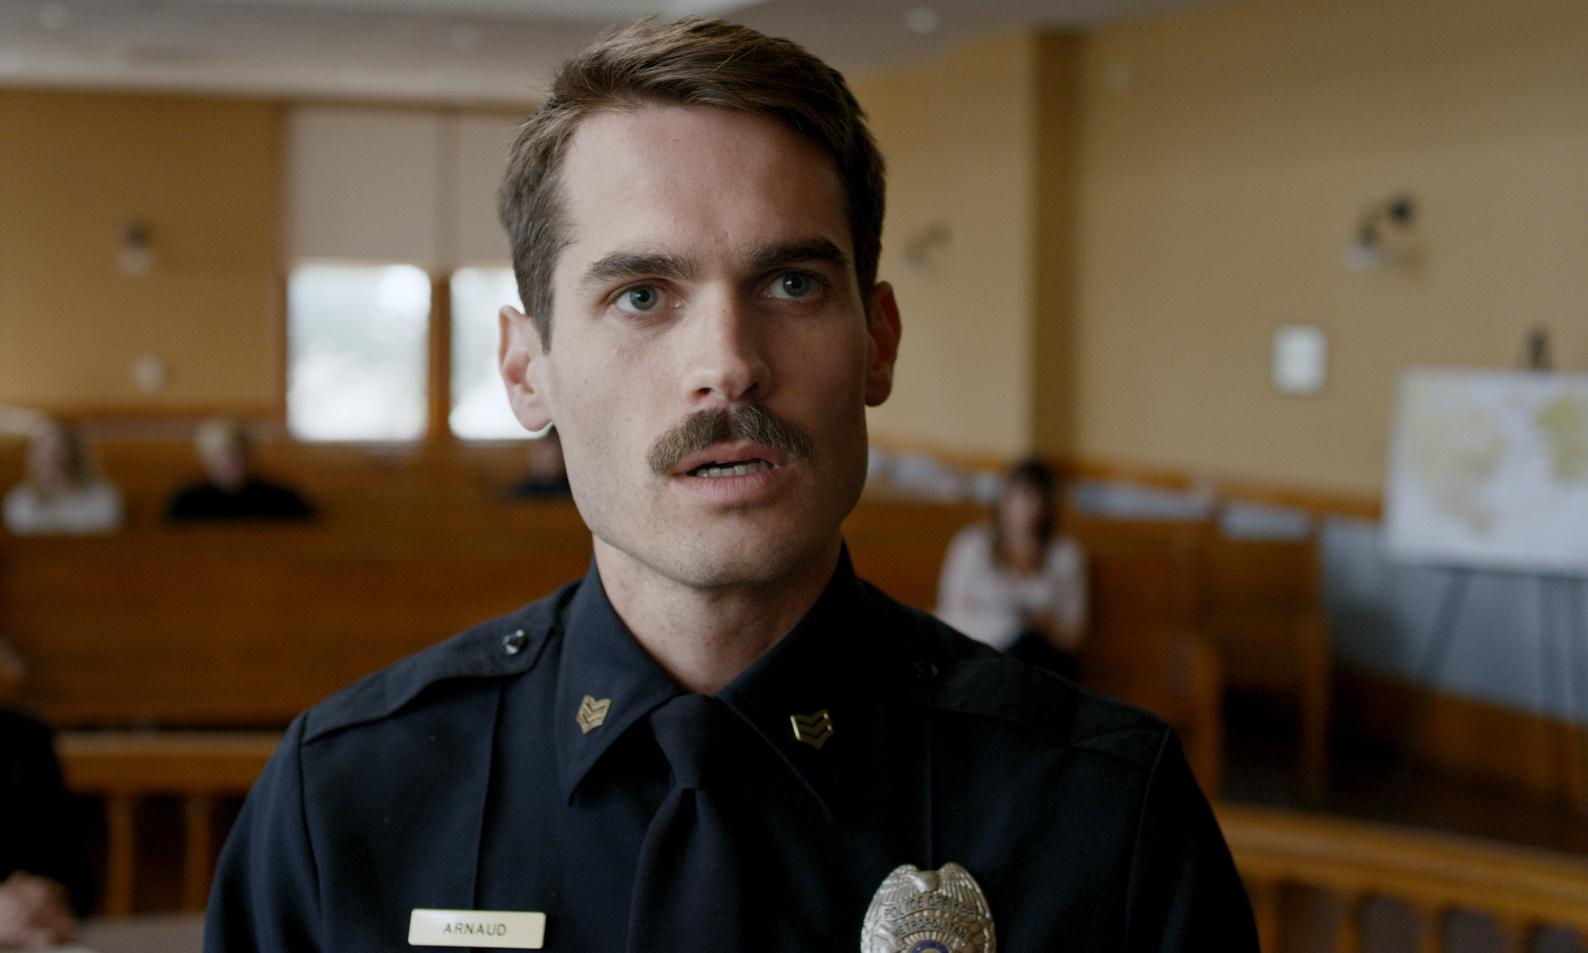 Thunder Road review – bittersweet portrayal of law and disorder